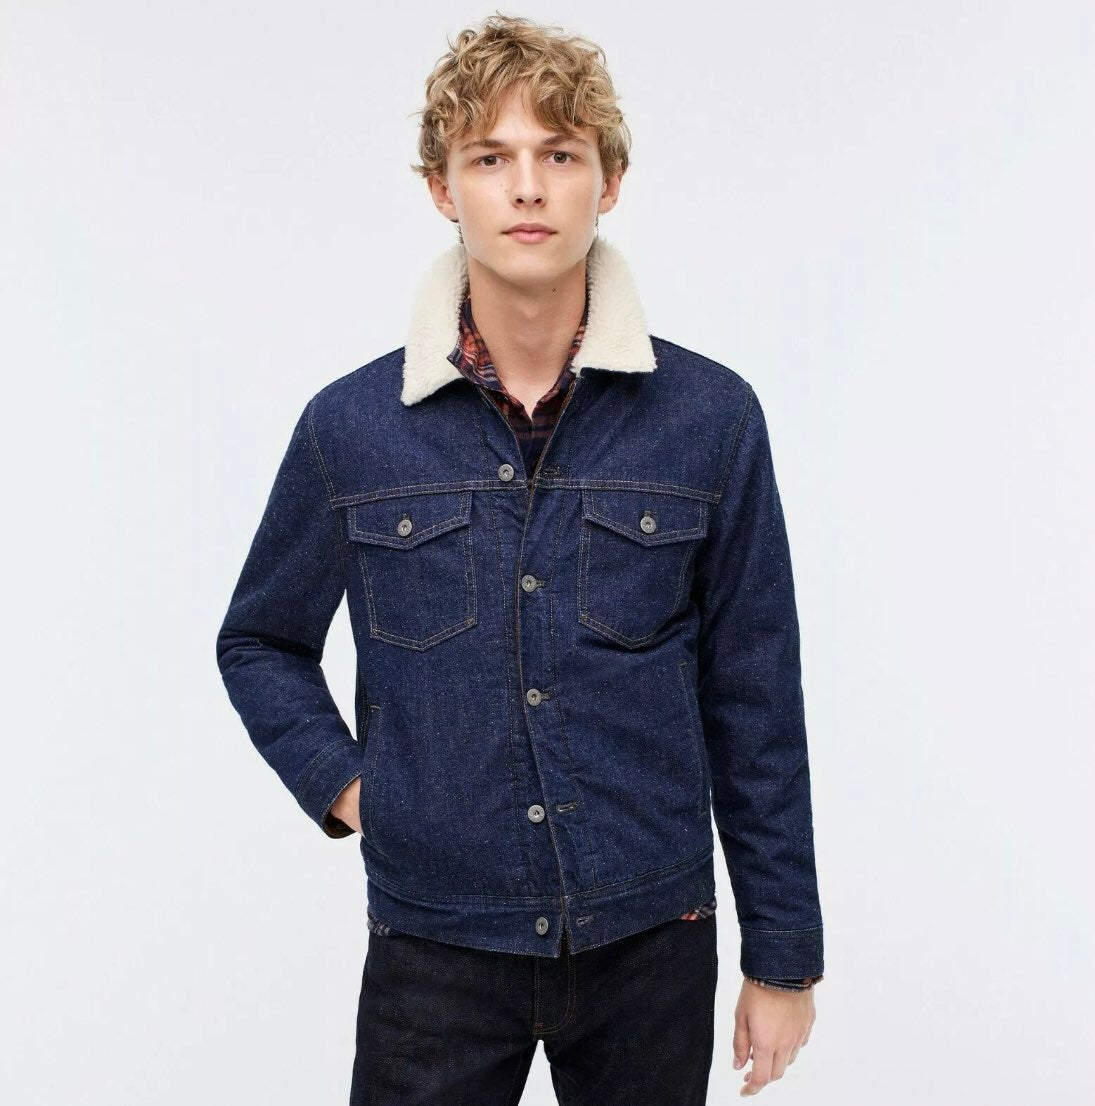 J. Crew Wallace & Barnes Denim Jacket